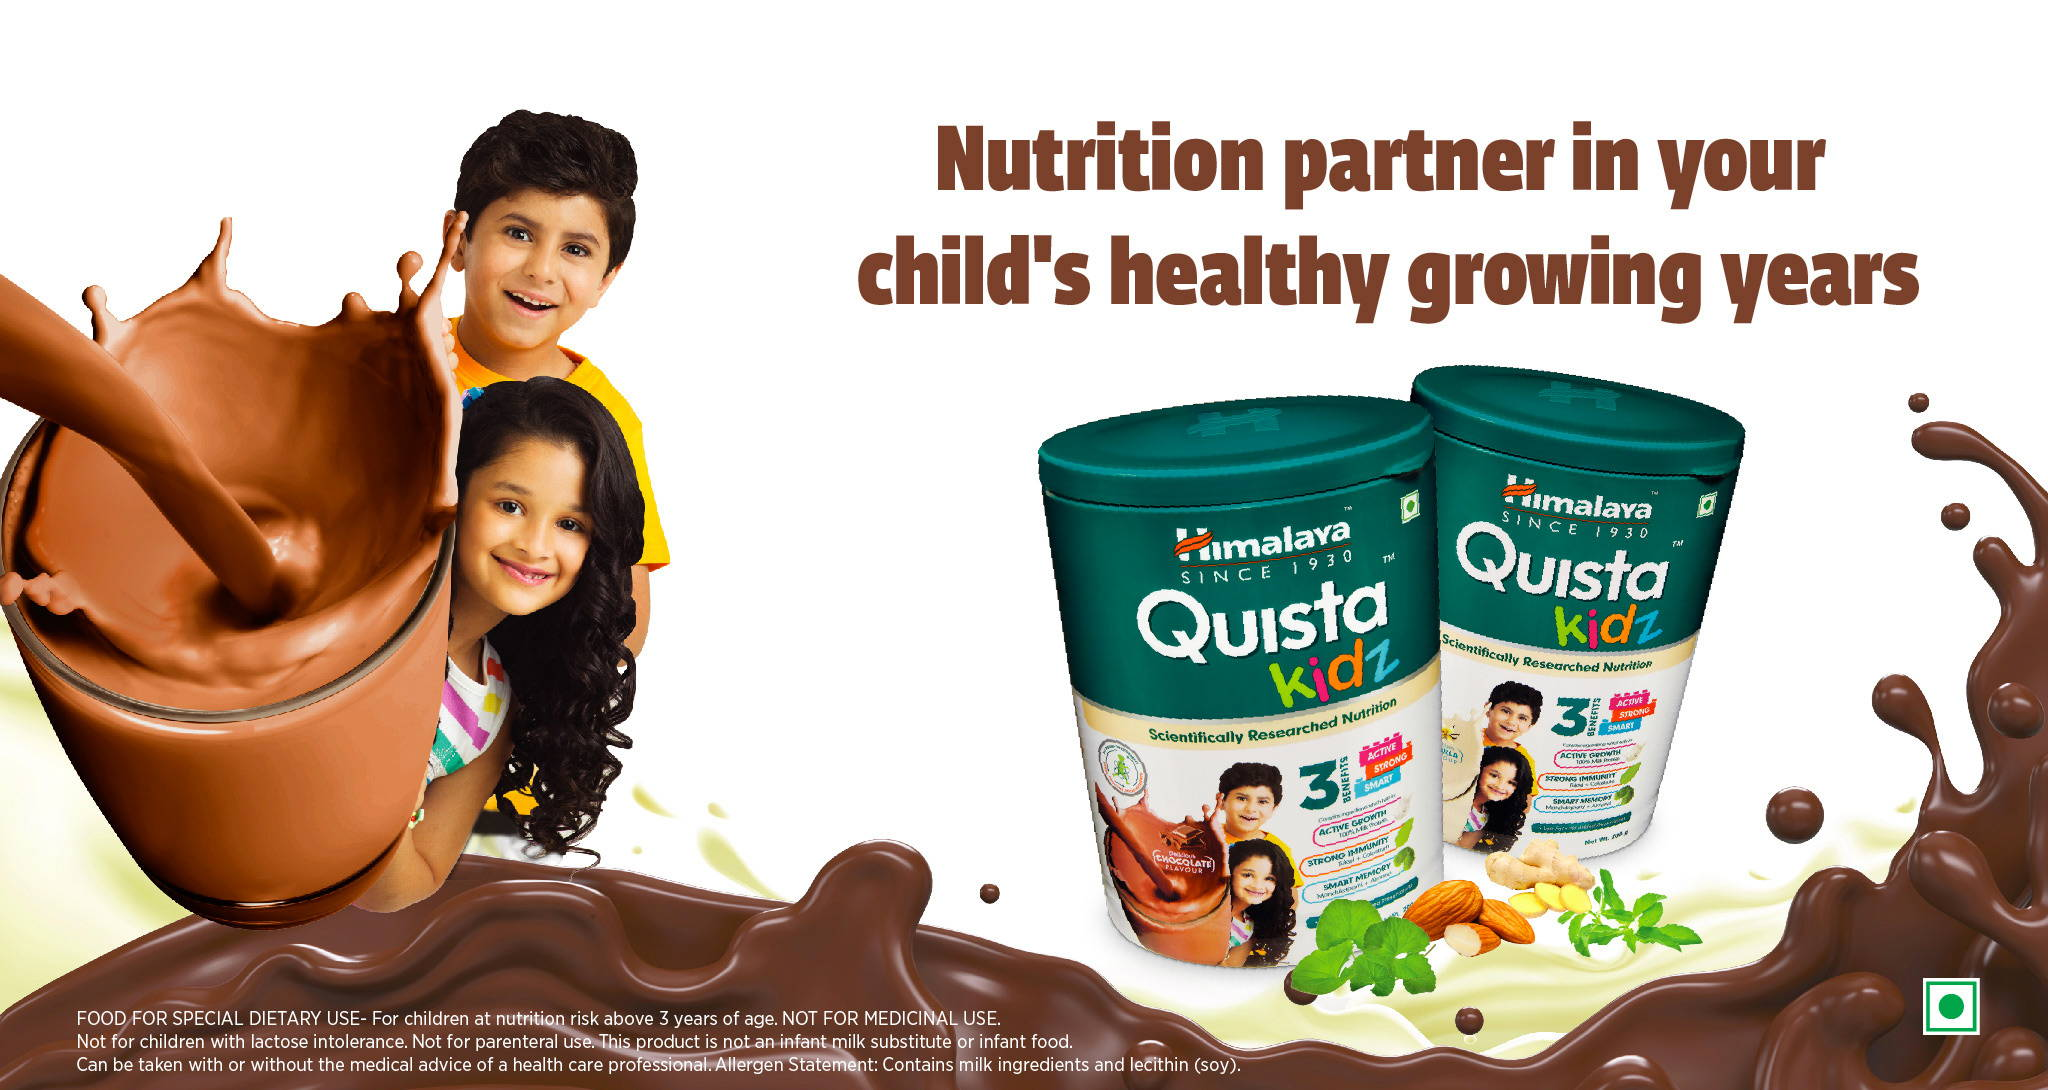 Quist kidz - Nutrition partner in your child's healthy growing years